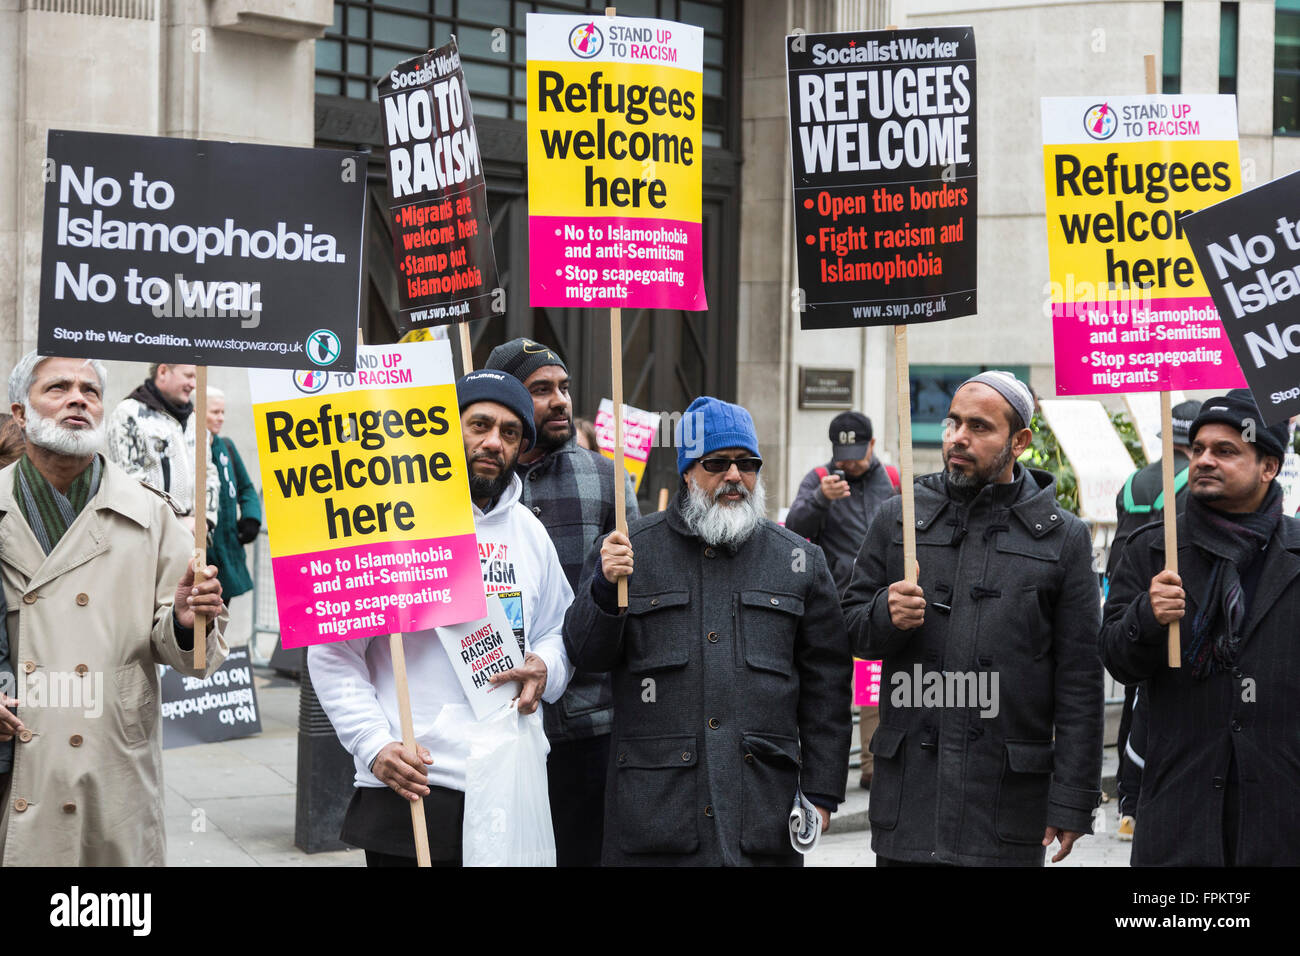 London, UK. 19 March 2016. Muslim men holding up posters against Islamophobia and racism. Thousands of protesters - Stock Image